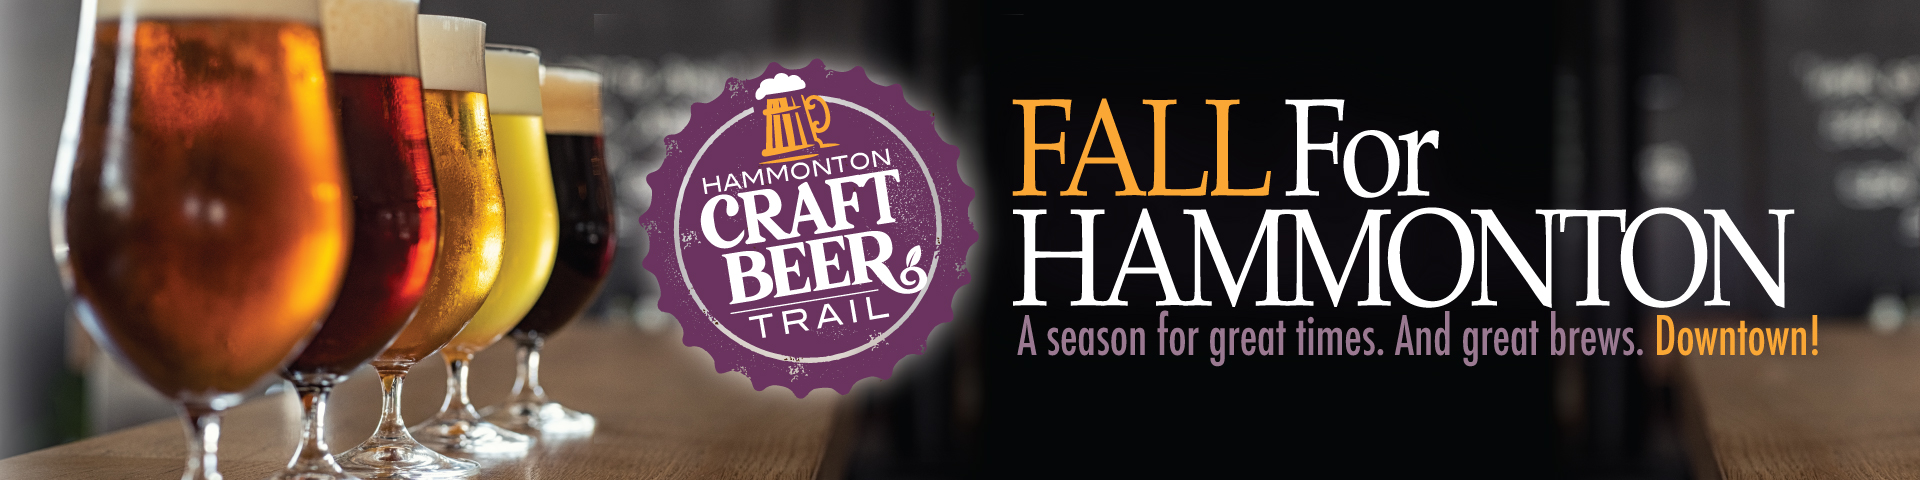 FALL-Beer Trail 2020 Web Banner 1920x479